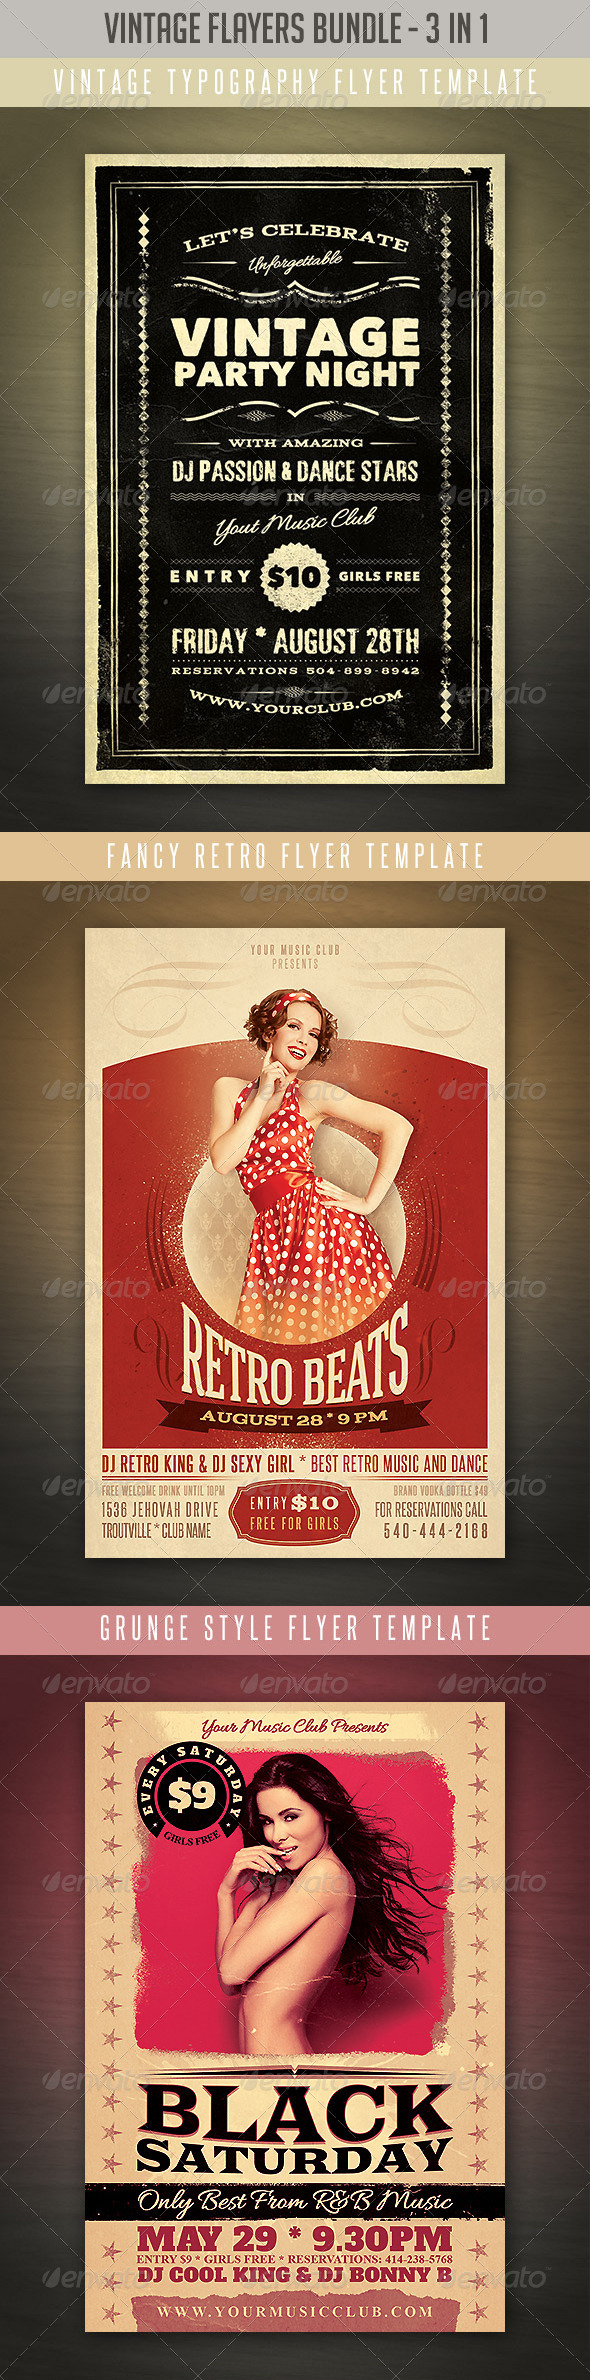 GraphicRiver Vintage & Retro Flyers Bundle 2 4687018